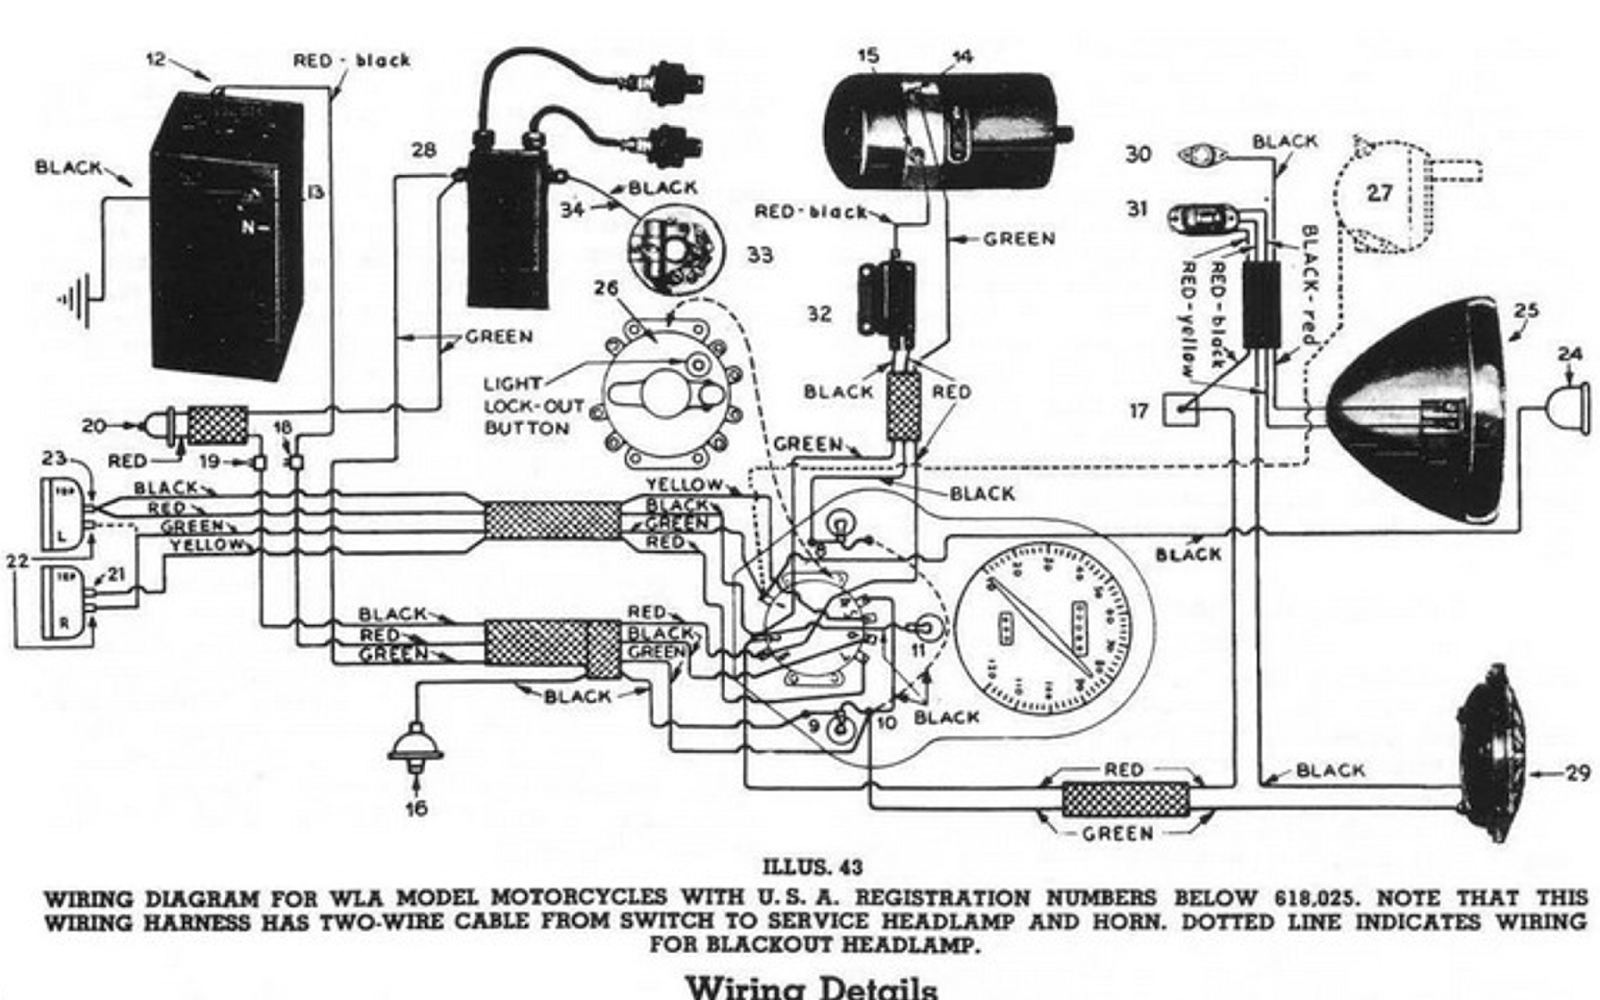 Harley Davidson Wiring Schematics - Wiring Diagram Sample on harley davidson starter, harley davidson screwdriver, harley wiring diagrams pdf, harley wiring diagram for dummies, harley davidson wiring harness diagram, harley softail wiring diagram, harley davidson fuel injectors, harley davidson performance, harley davidson fuel pump, harley davidson bug, harley davidson service manual, harley davidson wiring diagram manual, harley davidson battery, harley davidson knock sensor, harley davidson ignition, harley davidson fuses, harley davidson bridge, harley davidson radio, harley davidson oxygen sensor,